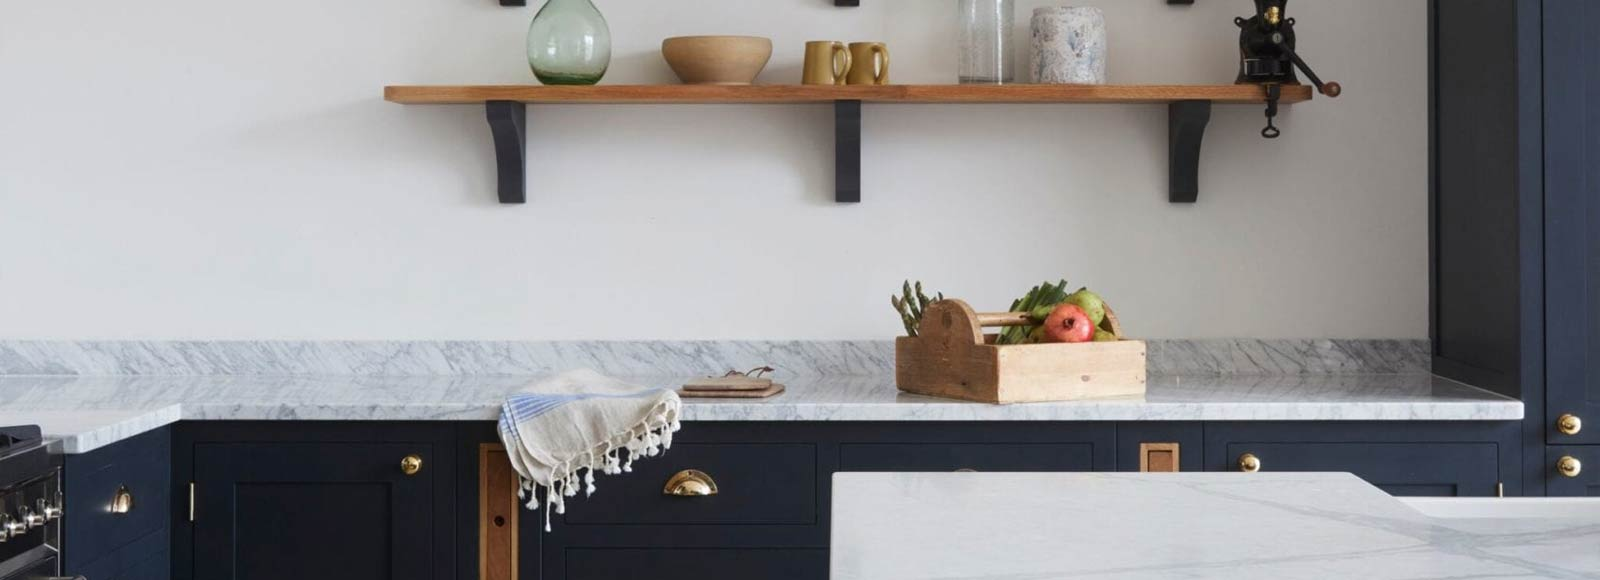 Navy blue shaker kitchen sideboard with wooden shelves